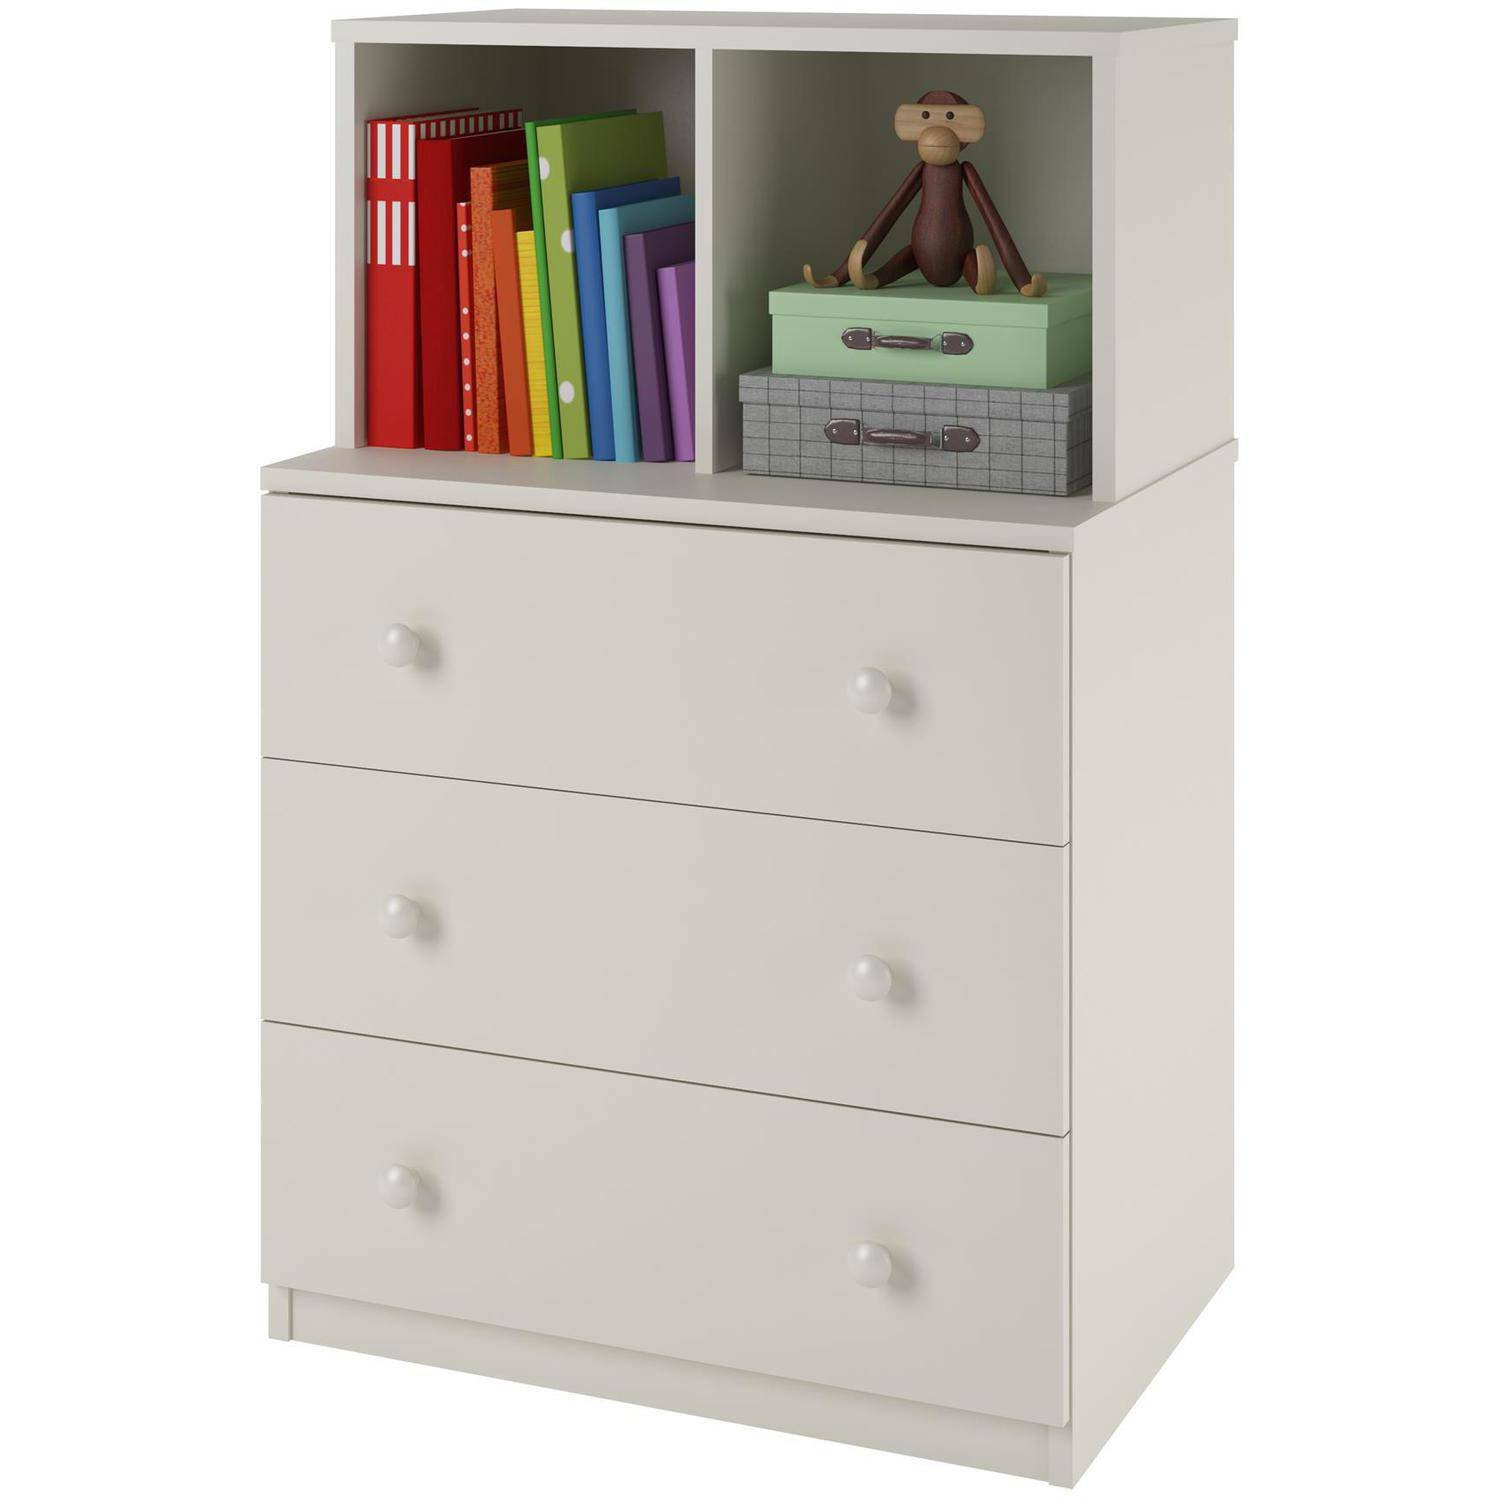 3-Drawer Dresser 2-Cubbies White Wooden Clothes Toys Books Decor Display Storage Cabinet Organizer Furniture-Home Office Dorm Apartment Bedroom Dimensions: 23.68 x 15.68 x 36.68 Inches by ALT